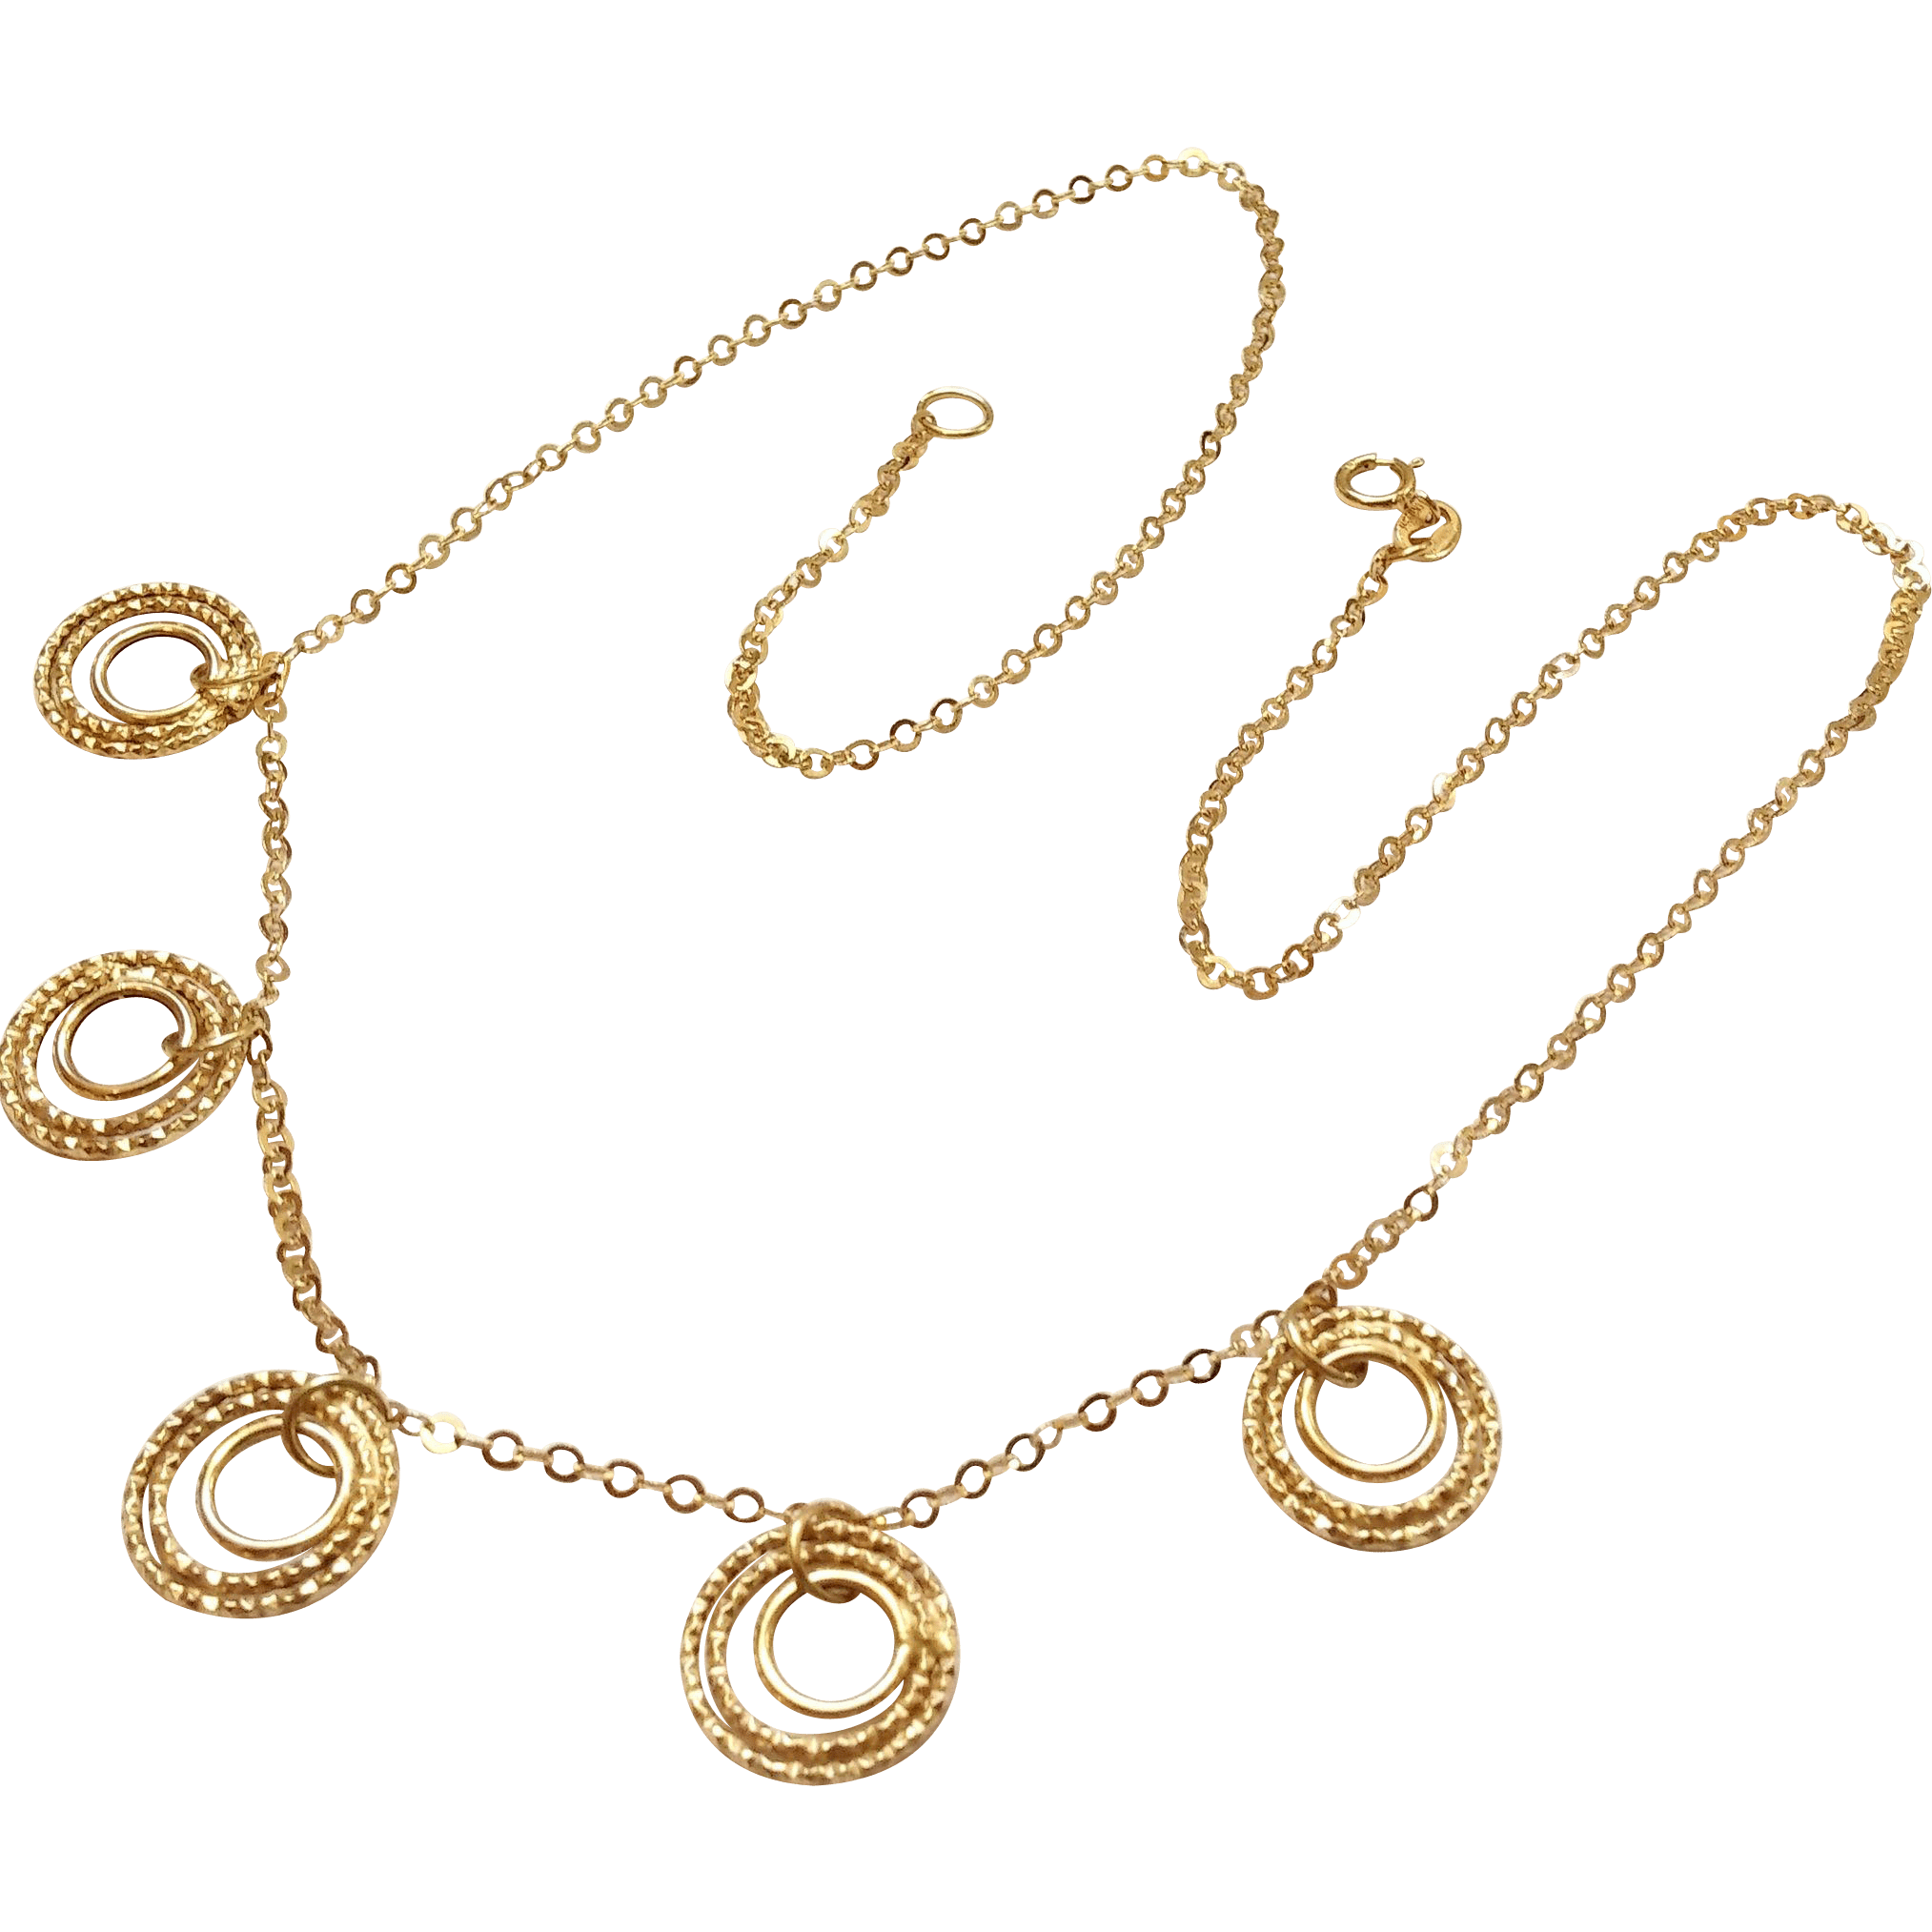 14k Gold Necklace Italy 18 38 Long SOLD On Ruby Lane